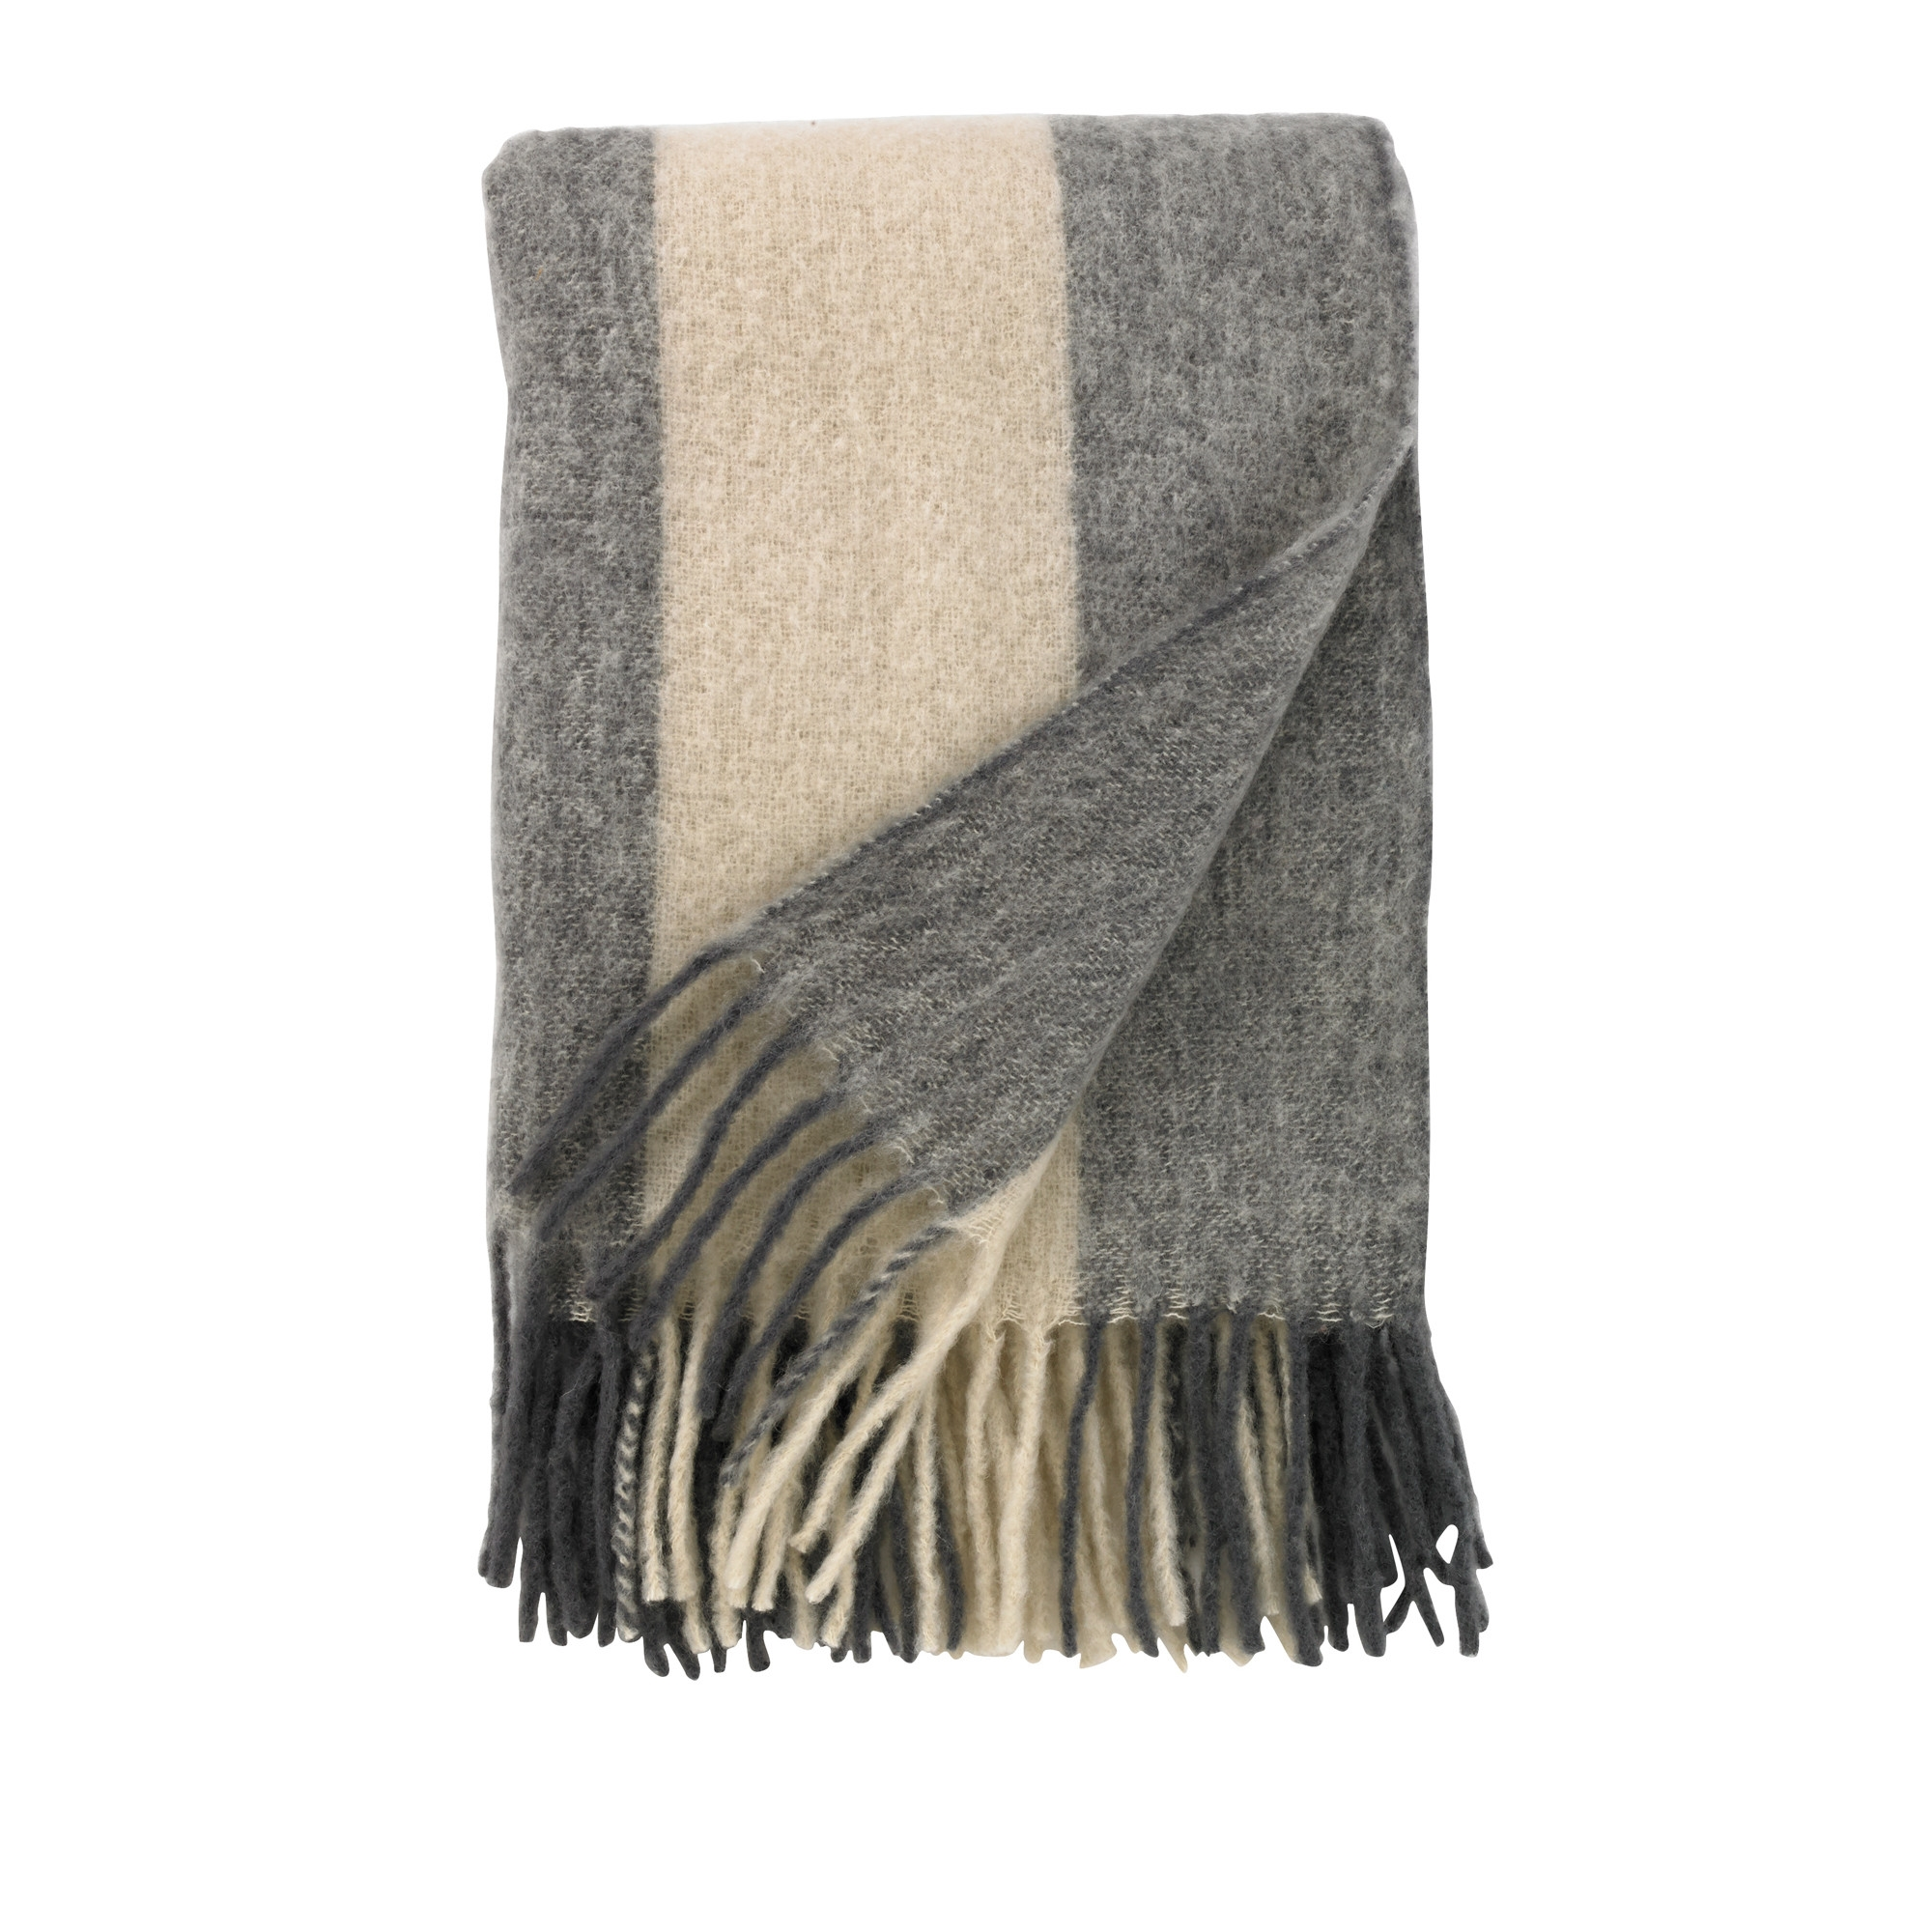 Mohair Striped Throw, $119